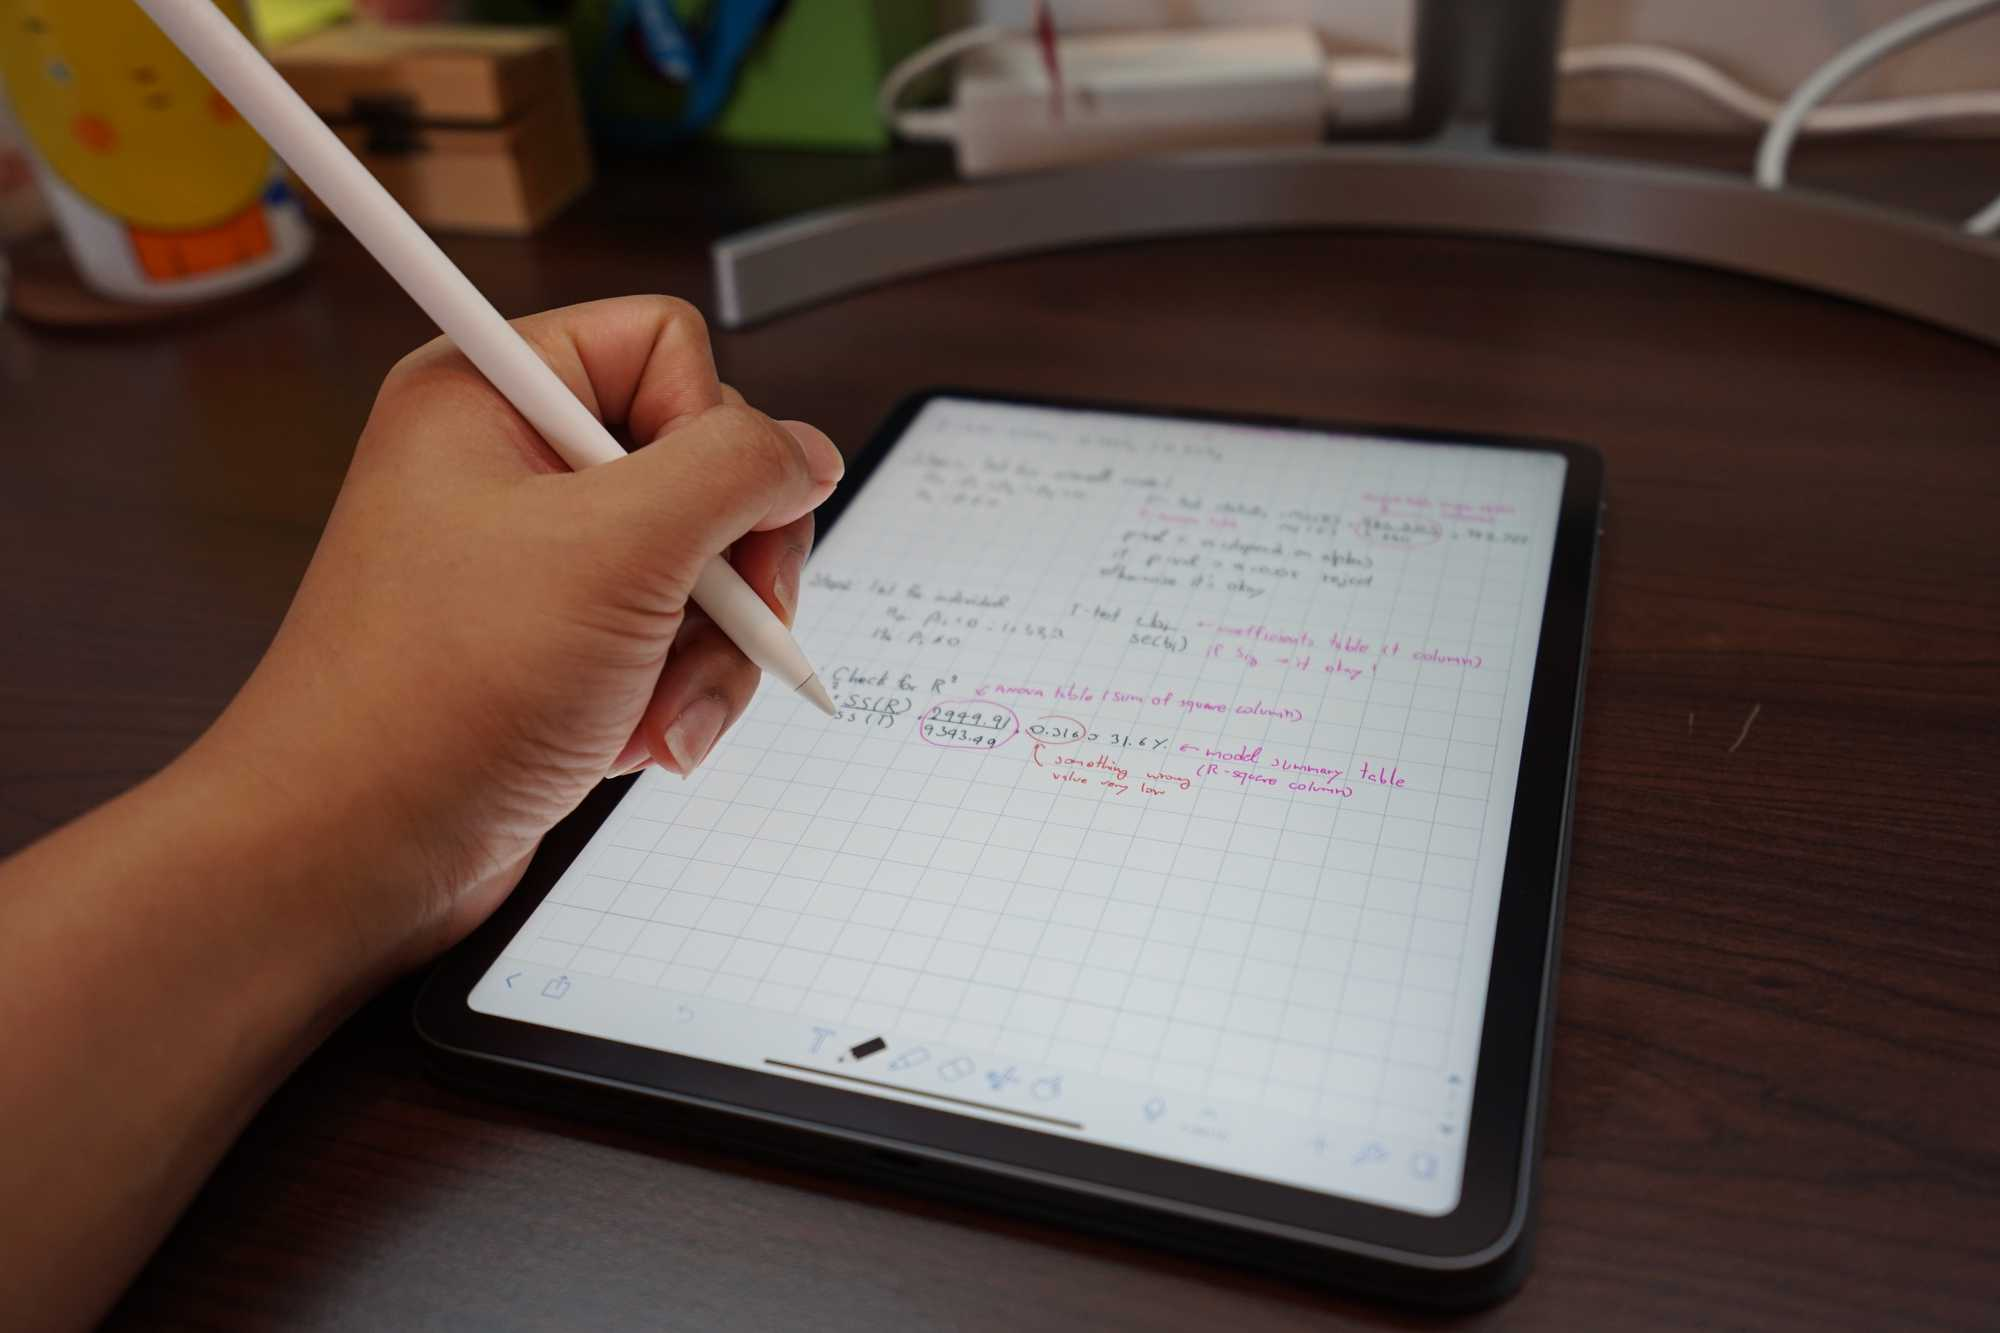 iPad Pro 11-inch with Notability App